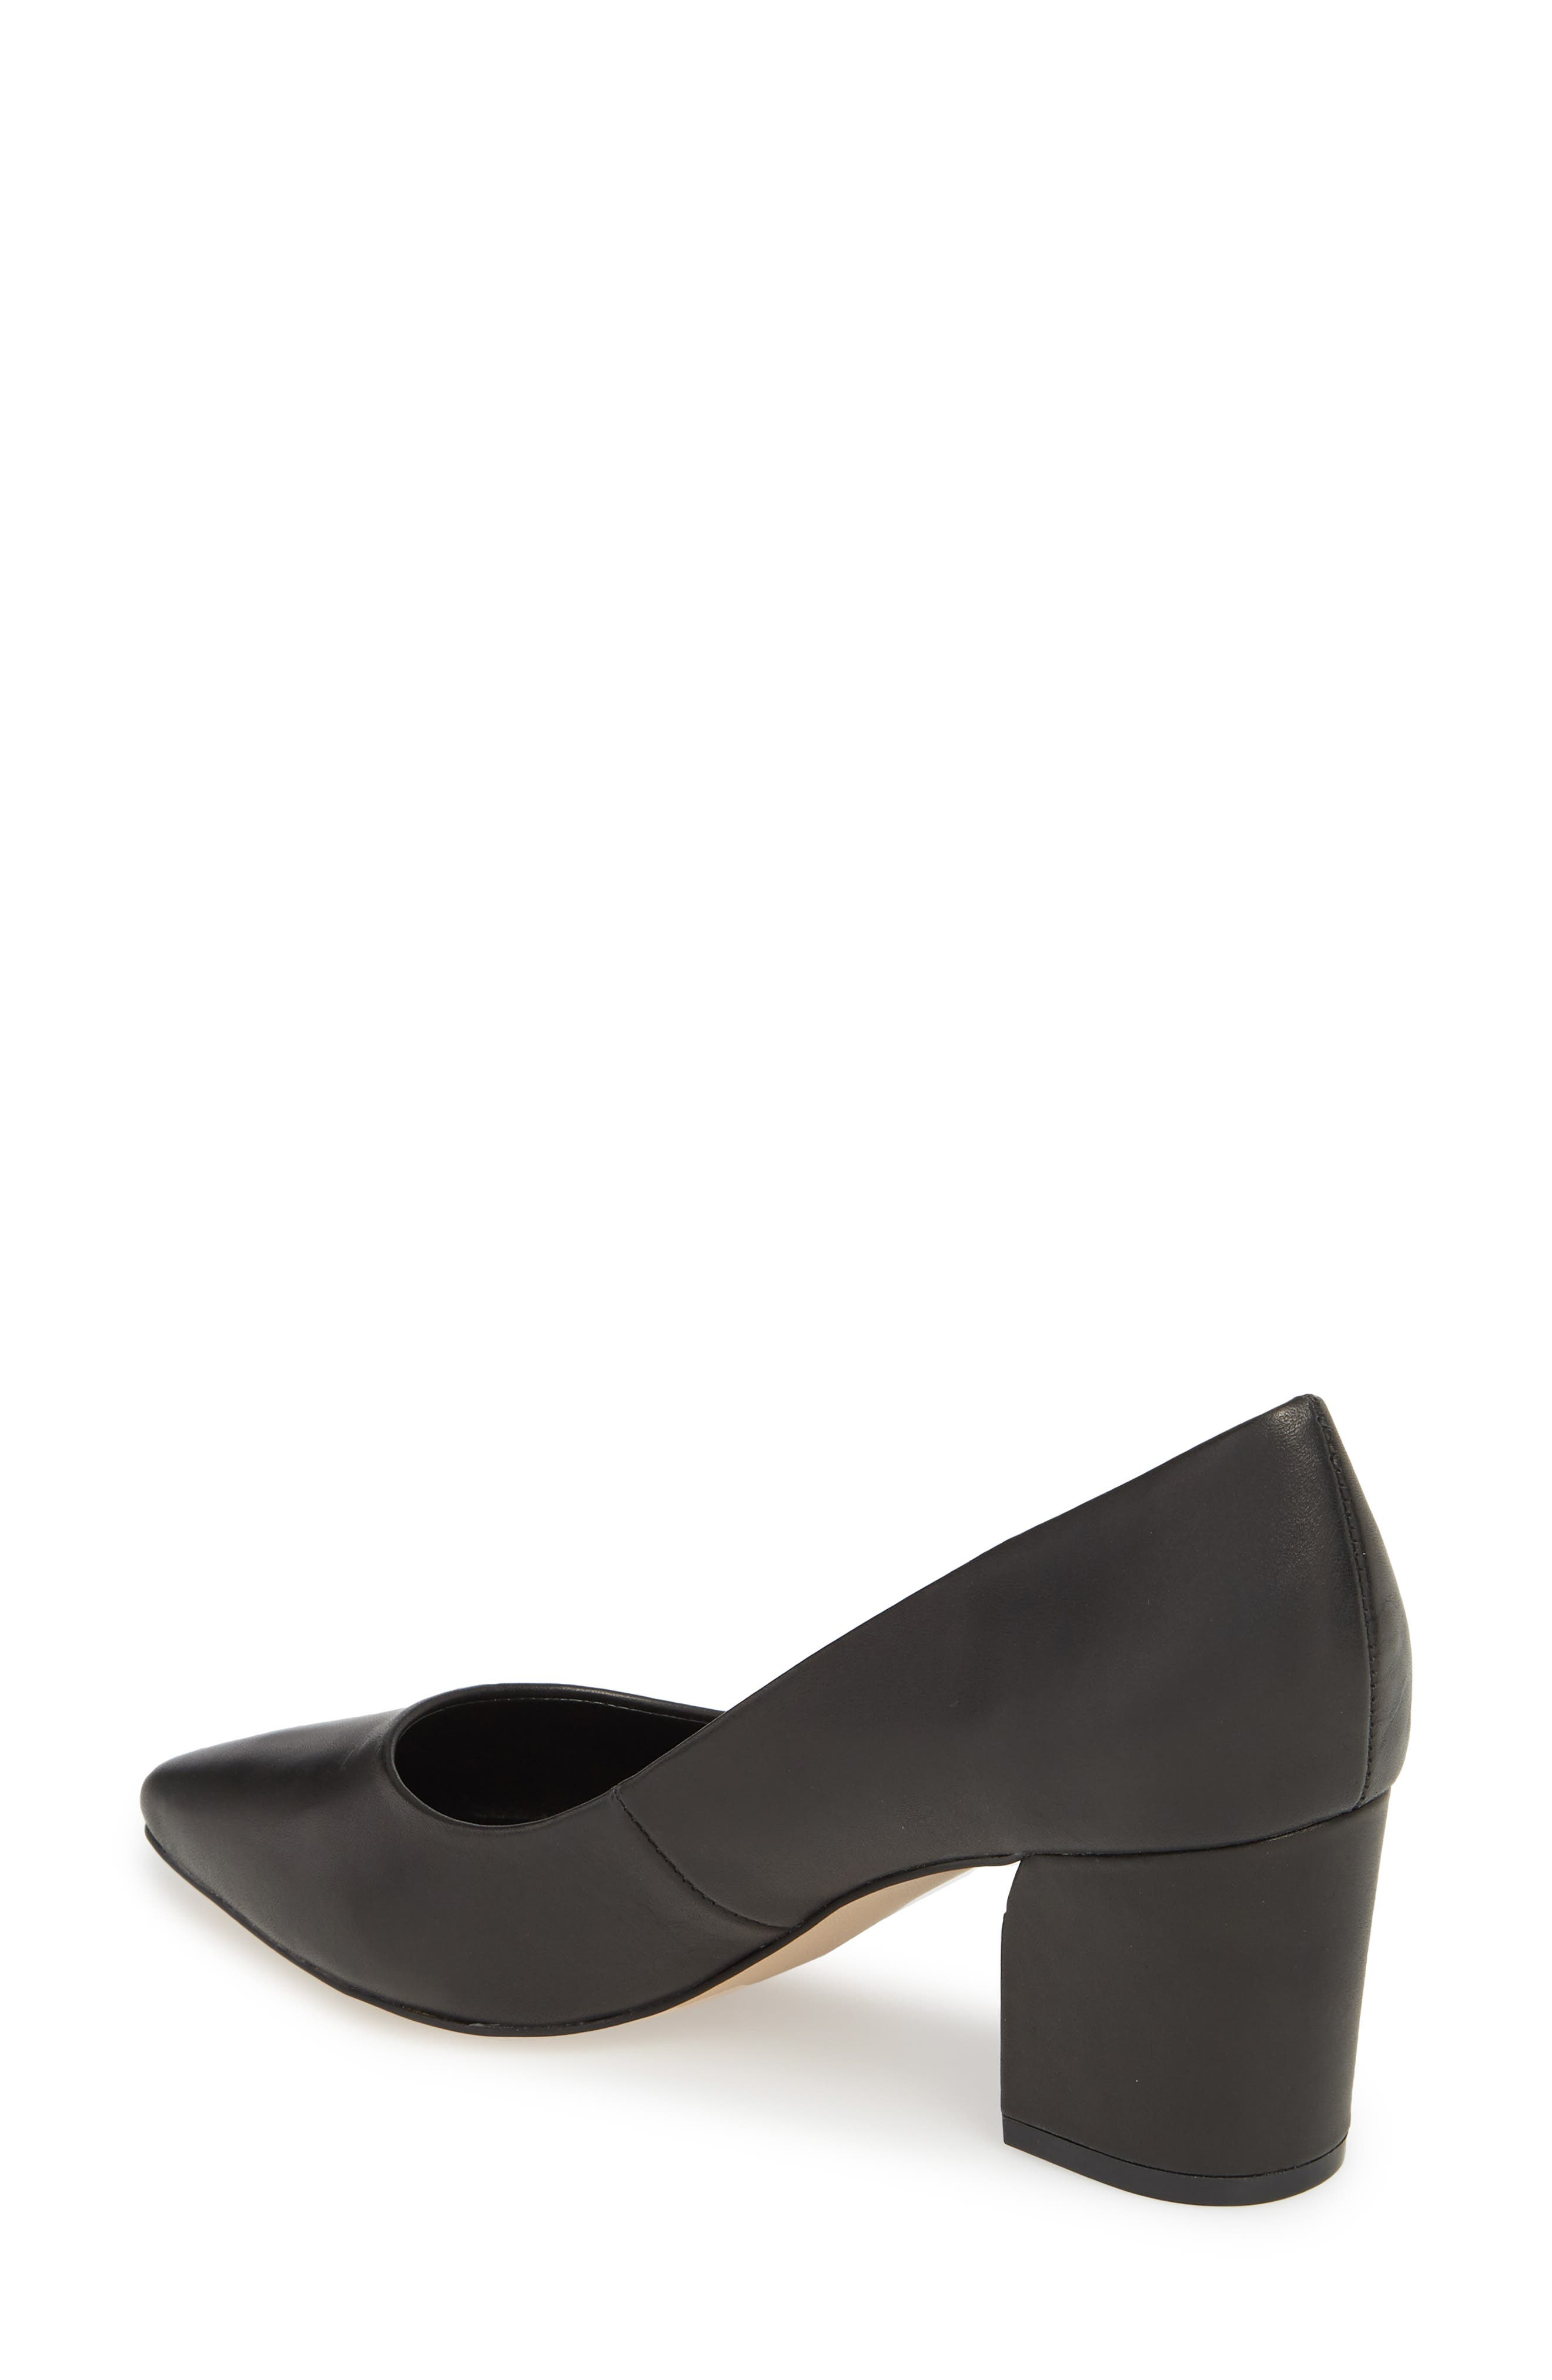 Haven Block Heel Pump,                             Alternate thumbnail 2, color,                             Black Leather